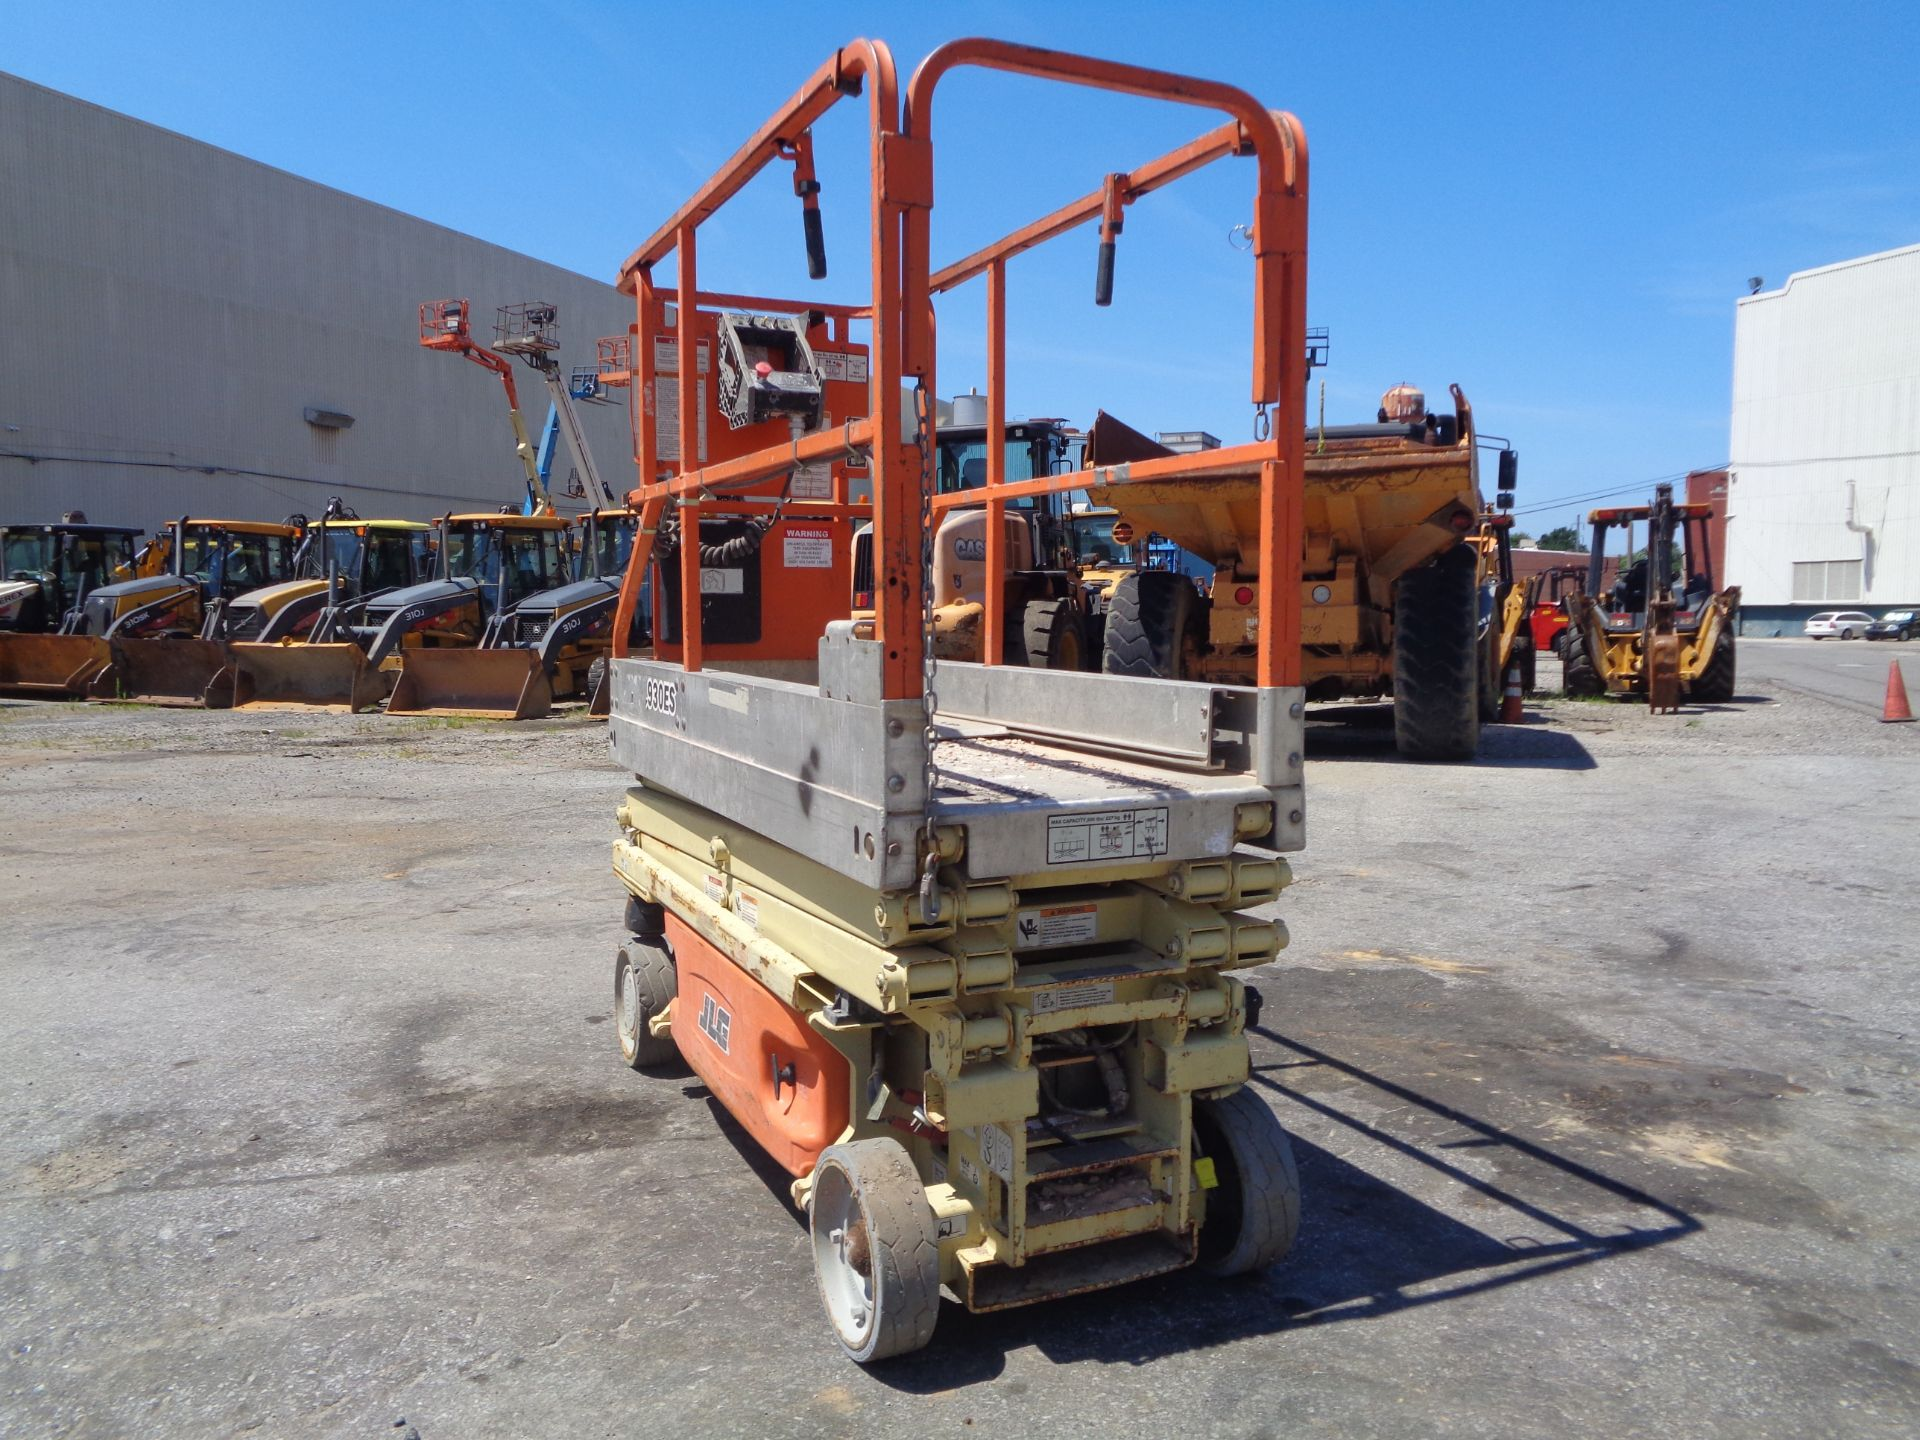 Lot 37b - 2006 JLG 1930ES Scissor Lift